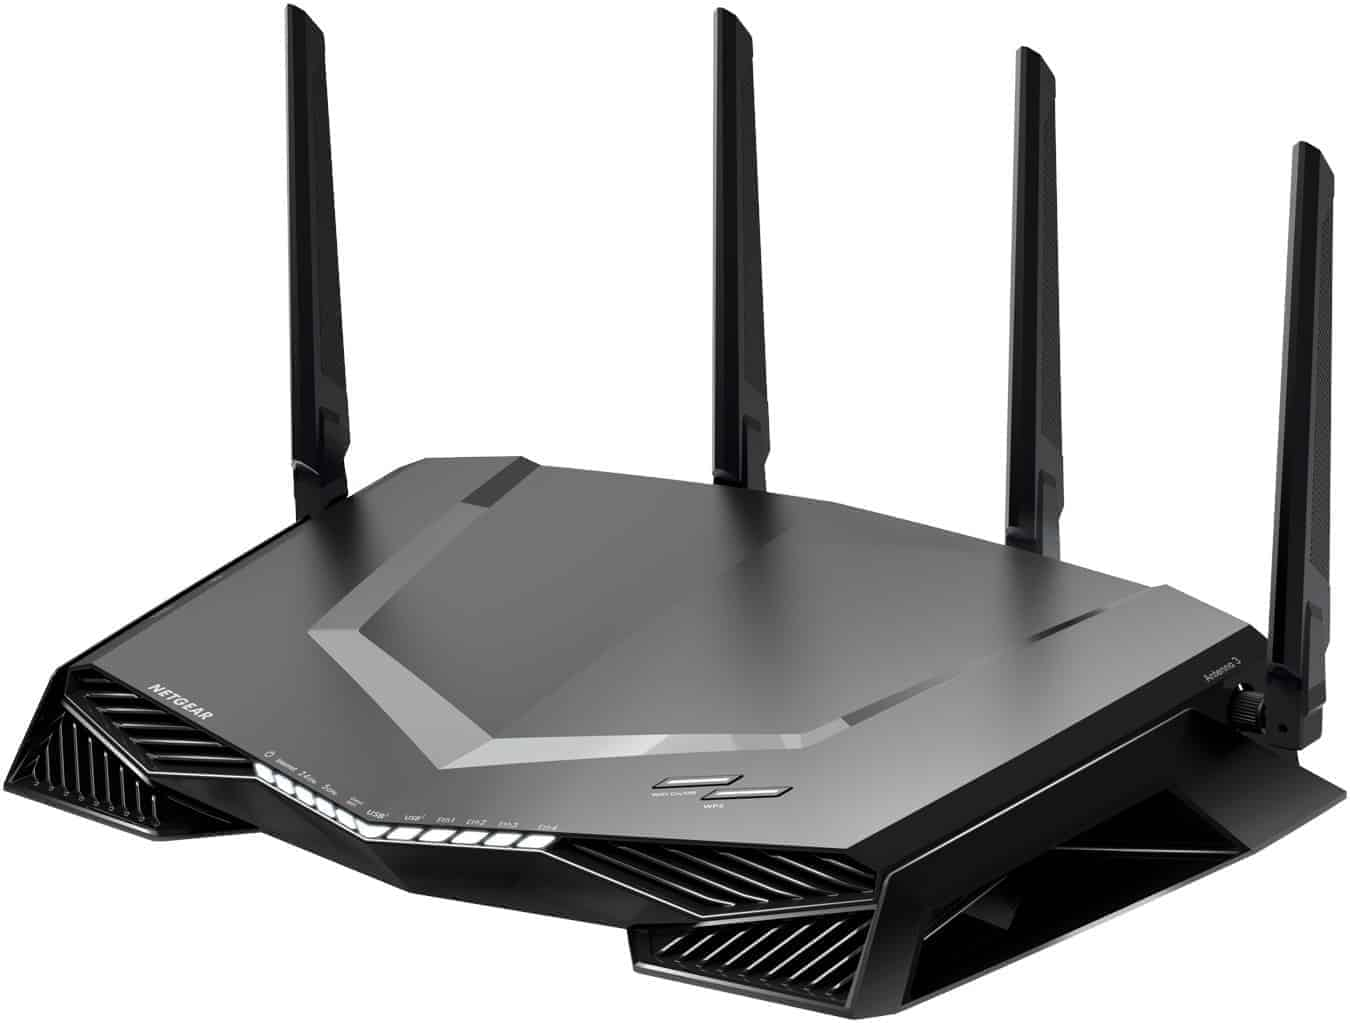 XR500_Hero_Transparent_png_jpgcopy Netgear Launches Nighthawk Pro Gaming XR 500 WiFi Router